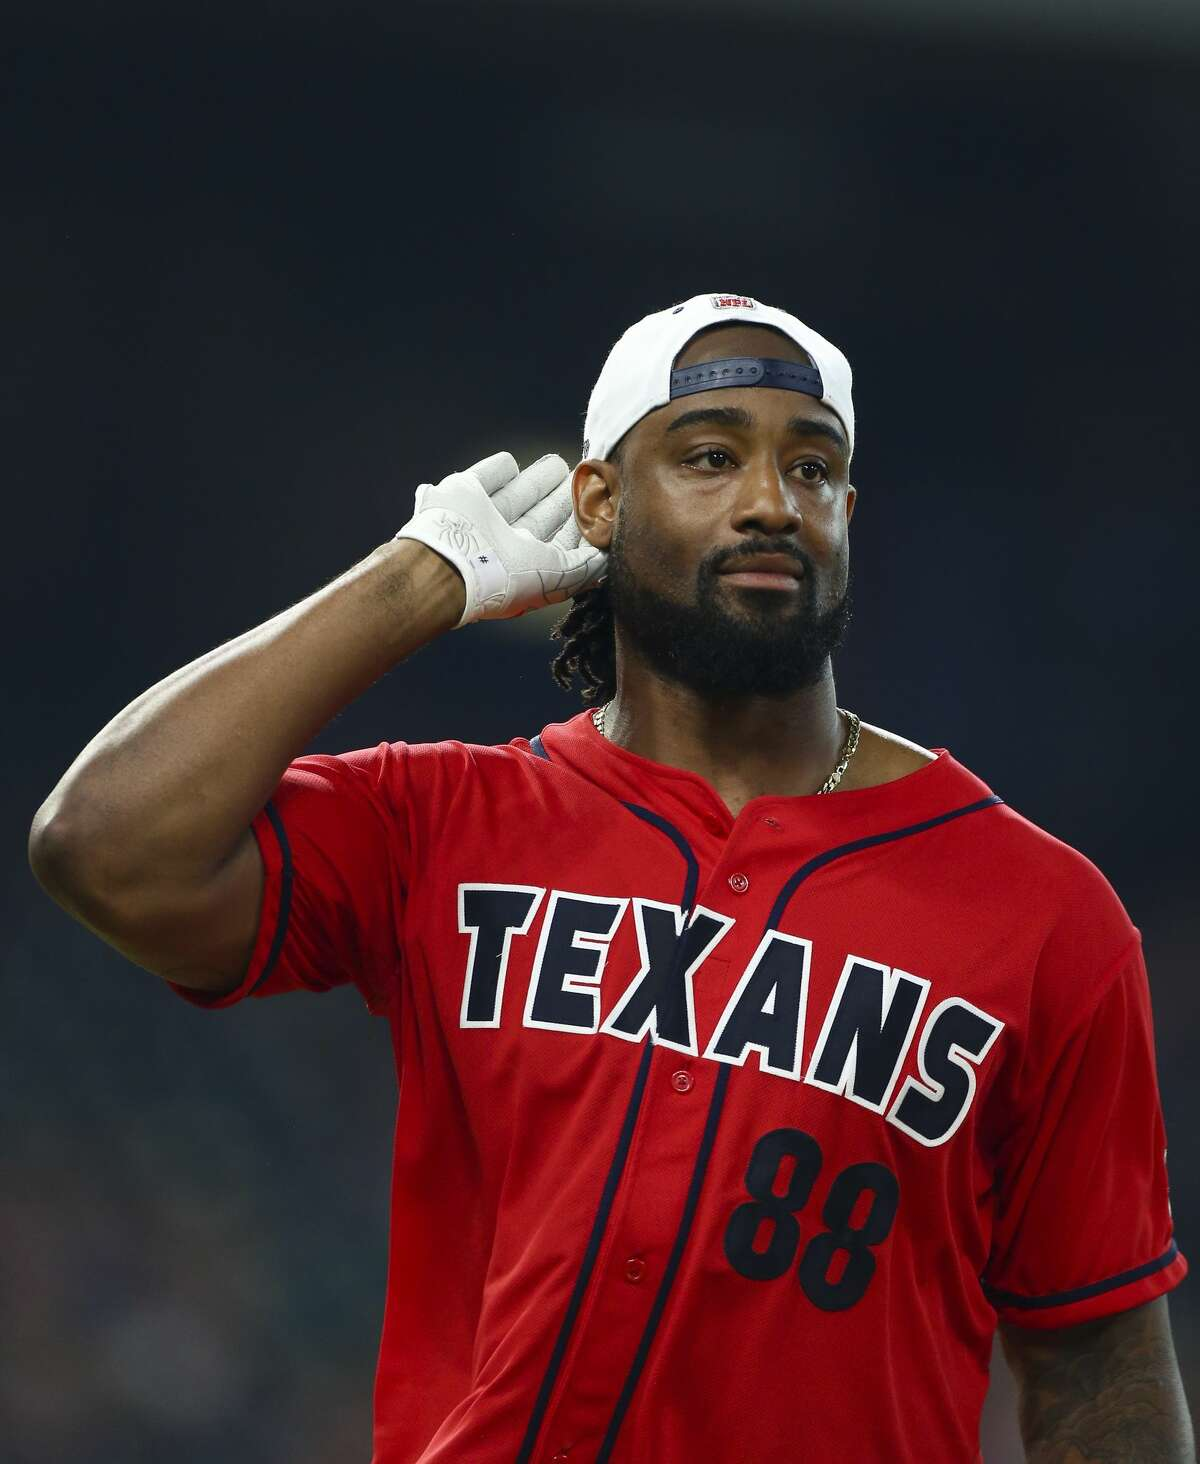 Houston Texans tight end Jordan Akins celebrates after hitting a home run against the defense during the J.J. Watt Foundation Charity Classic at Minute Maid Park Saturday, May 4, 2019, in Houston. The foundation's mission is to provide funding for middle schools across the country that have insufficient or no funding for after-school athletic programs.